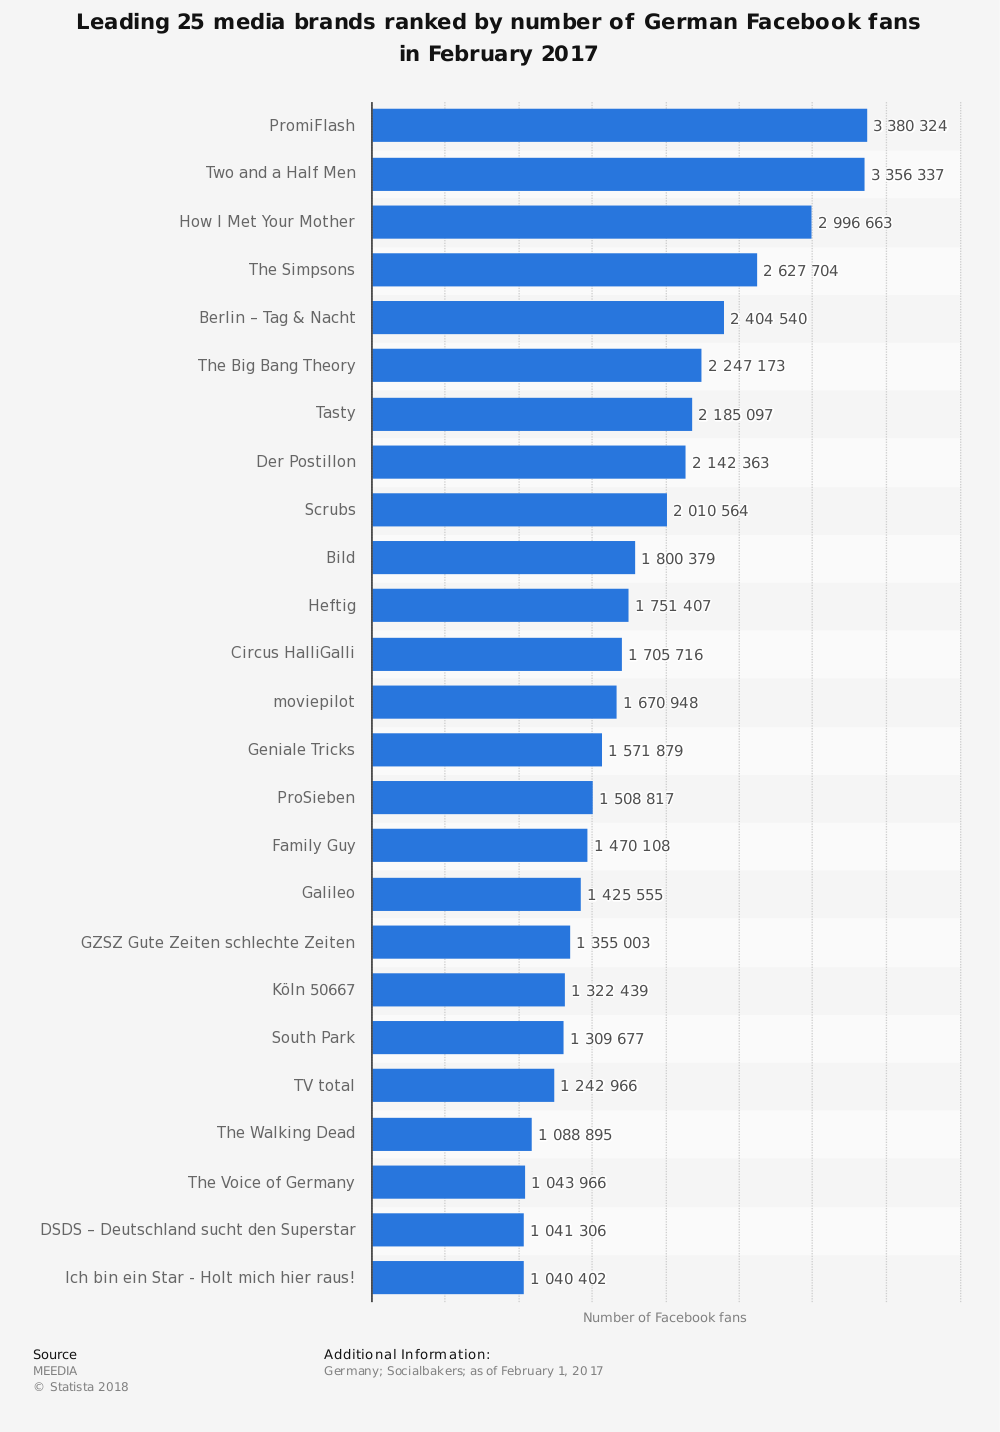 Statistic: Leading 25 media brands ranked by number of German Facebook fans in February 2017 | Statista